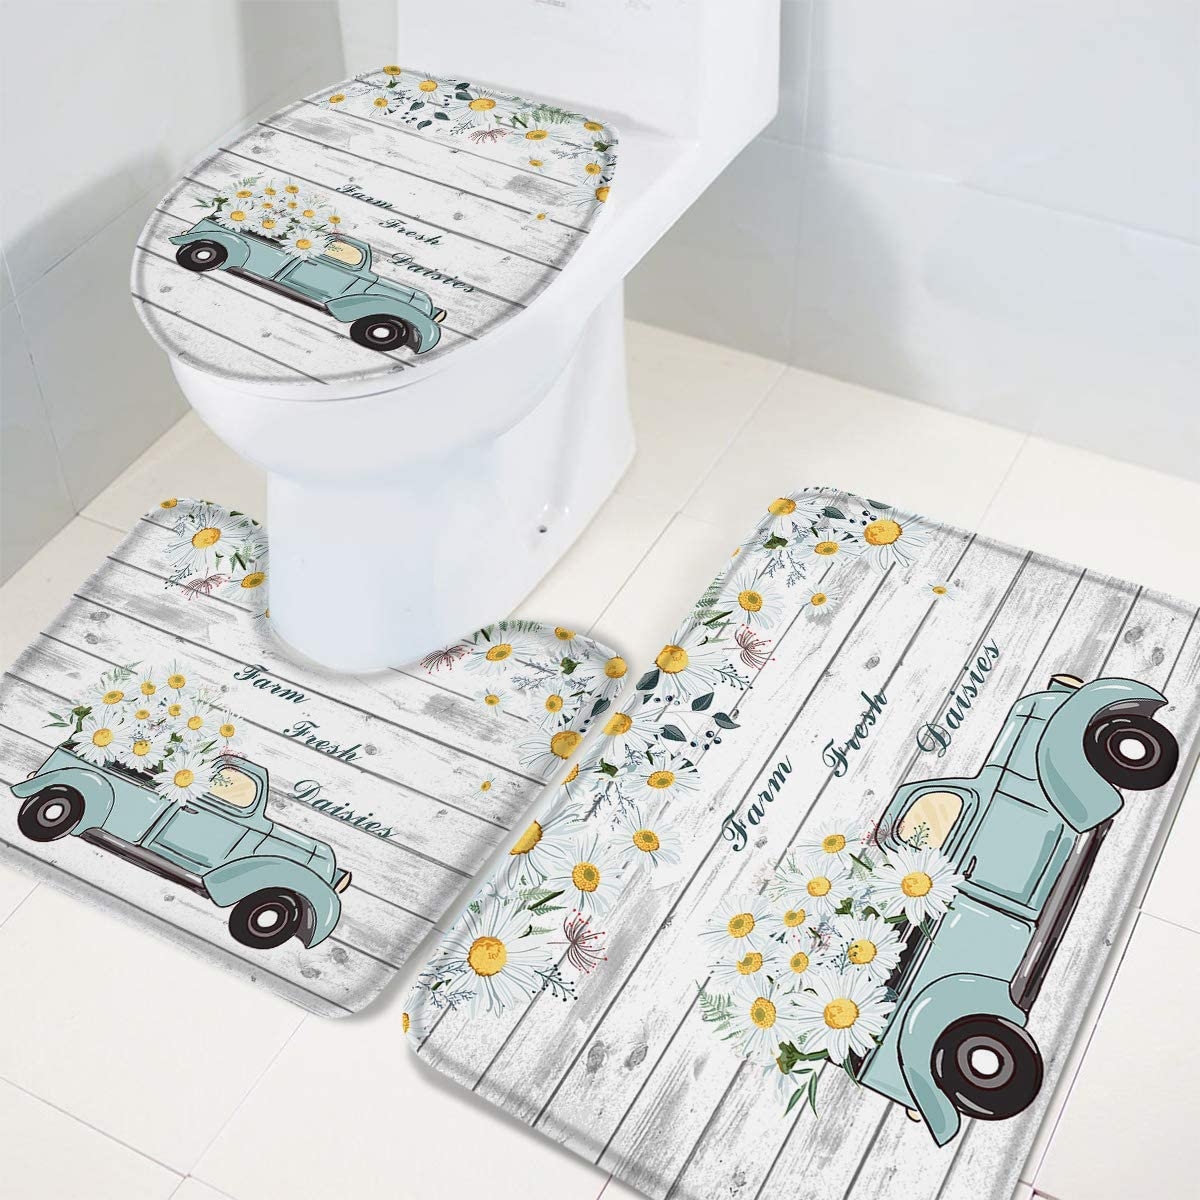 U-Shaped Toilet Floor Mats Fram Fresh Daisy and Vintage Truck Non-Slip Bathroom Decor Doormat Runner Rugs Toilet Seat Cover Wood Texture OneHoney 3-Piece Bath Rug and Mat Sets